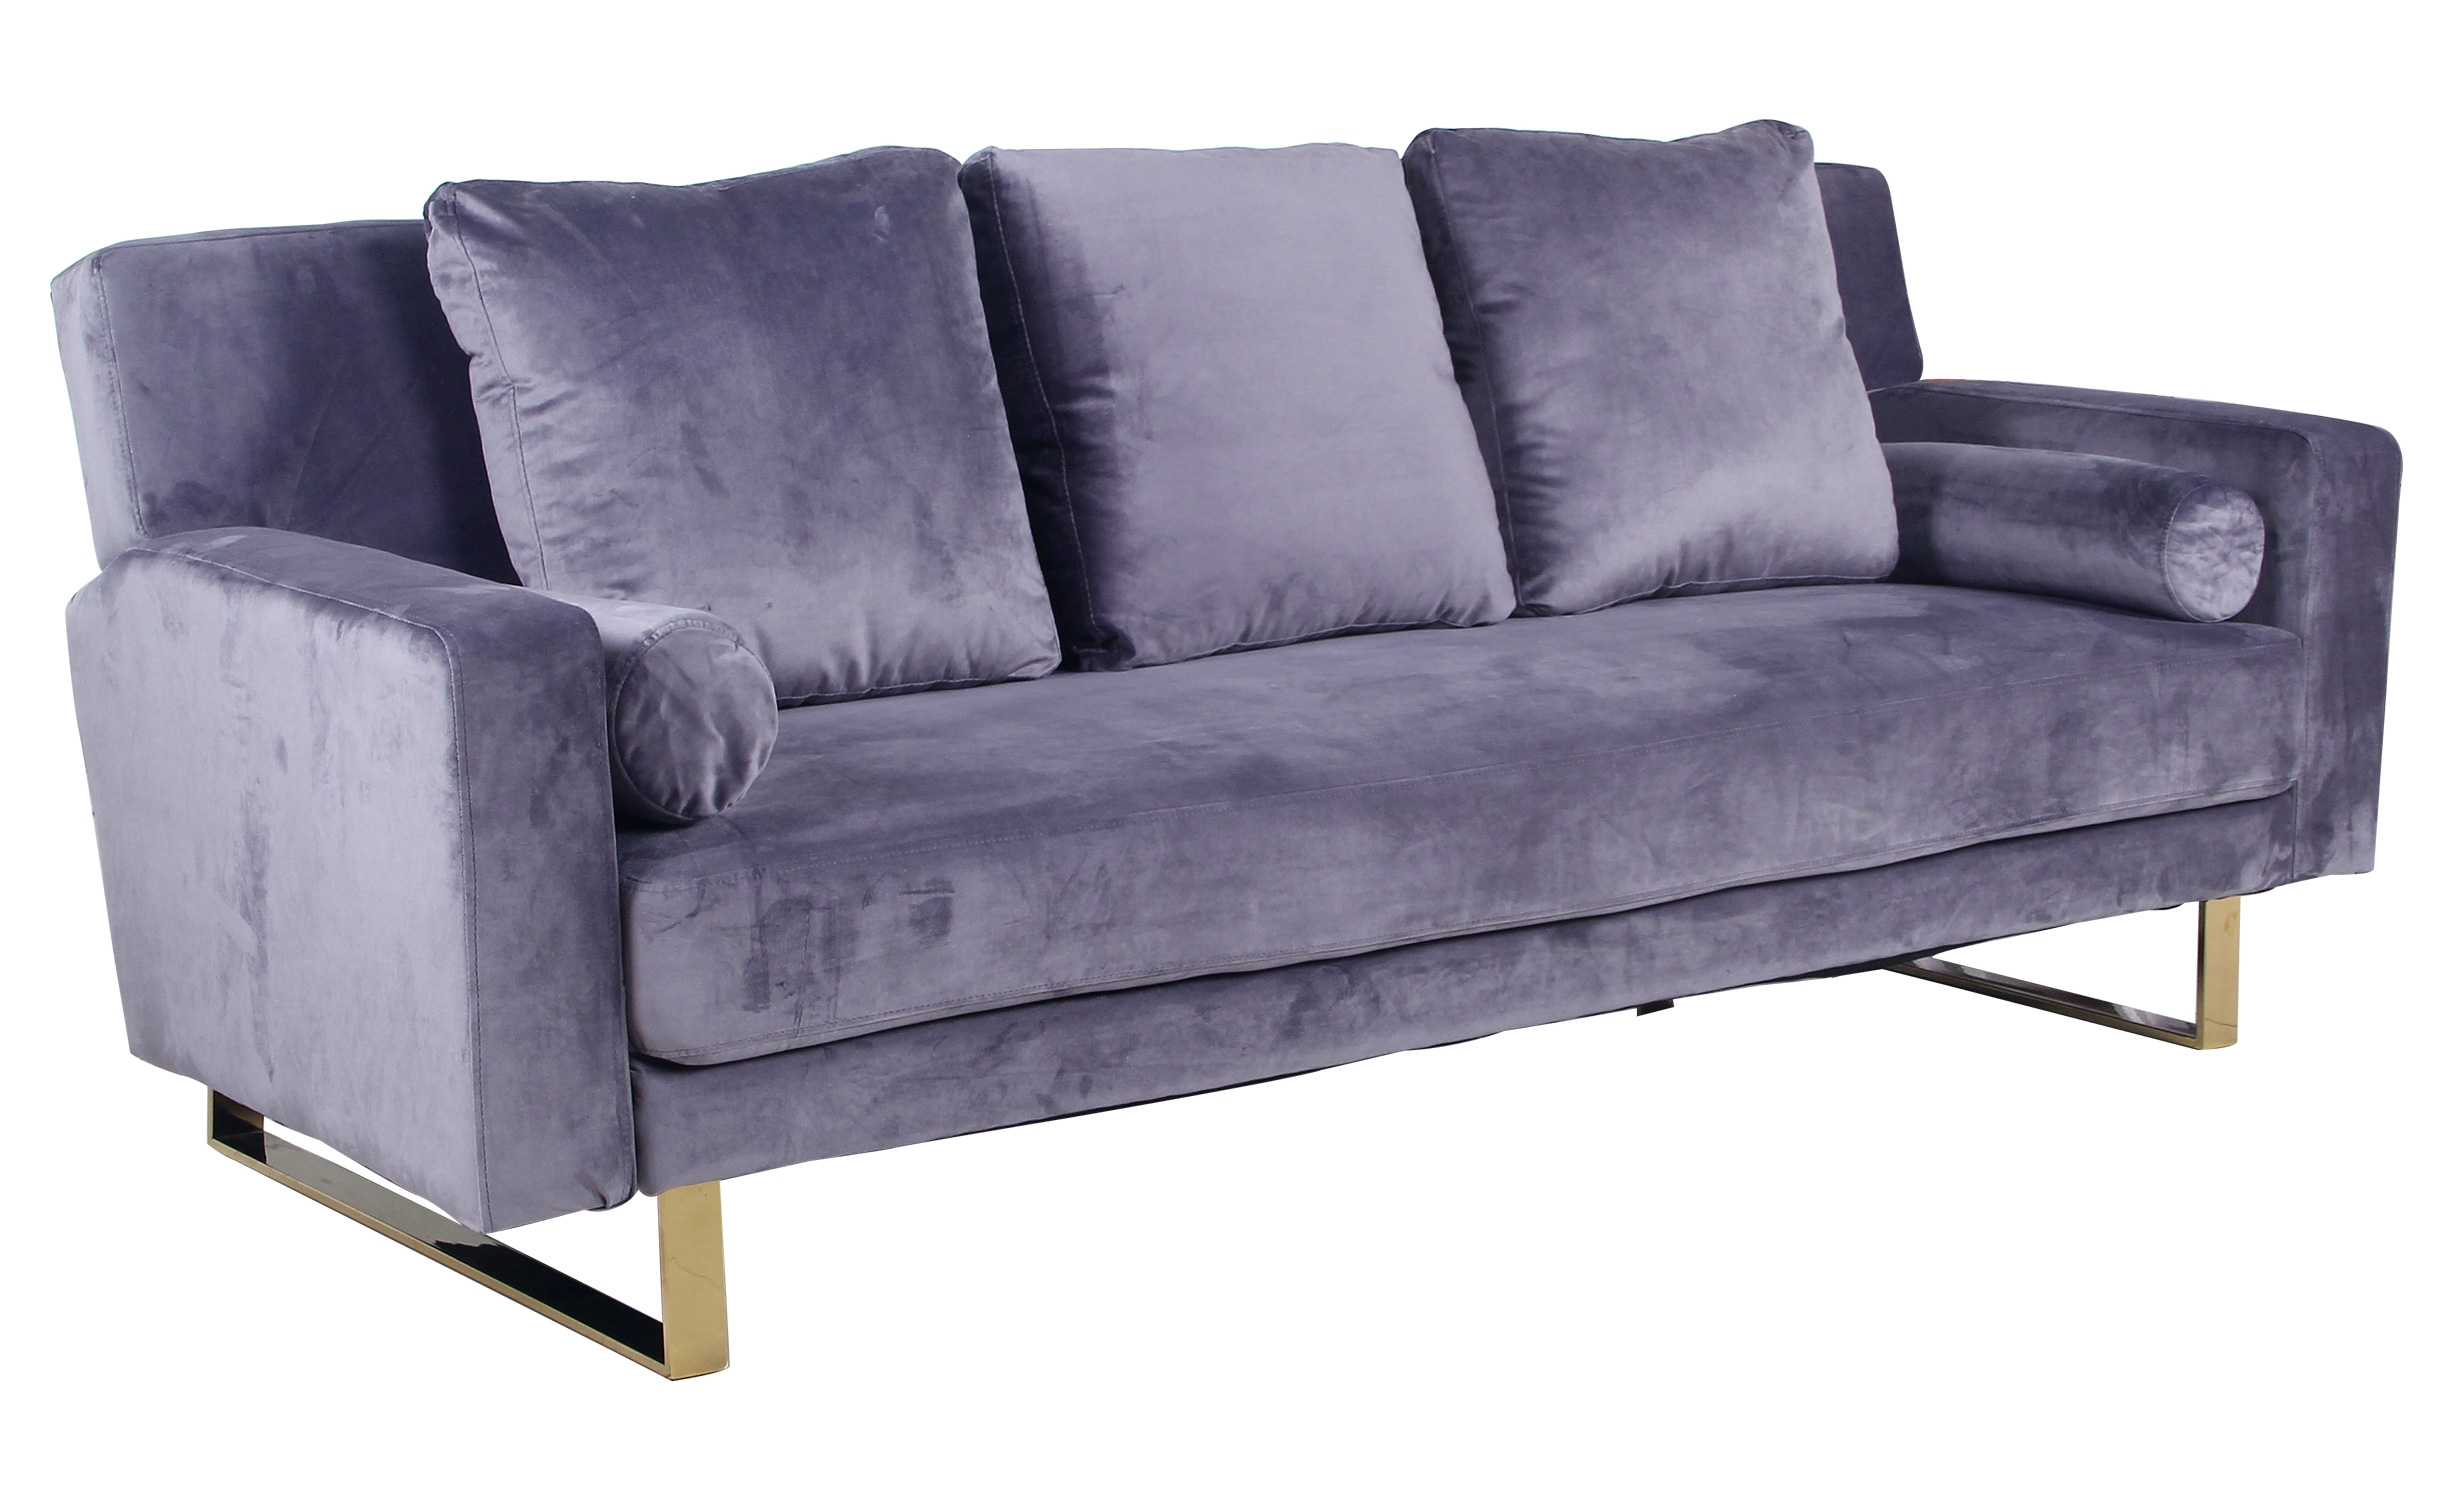 Canapé convertible Moonlight Velours Gris Pied Or